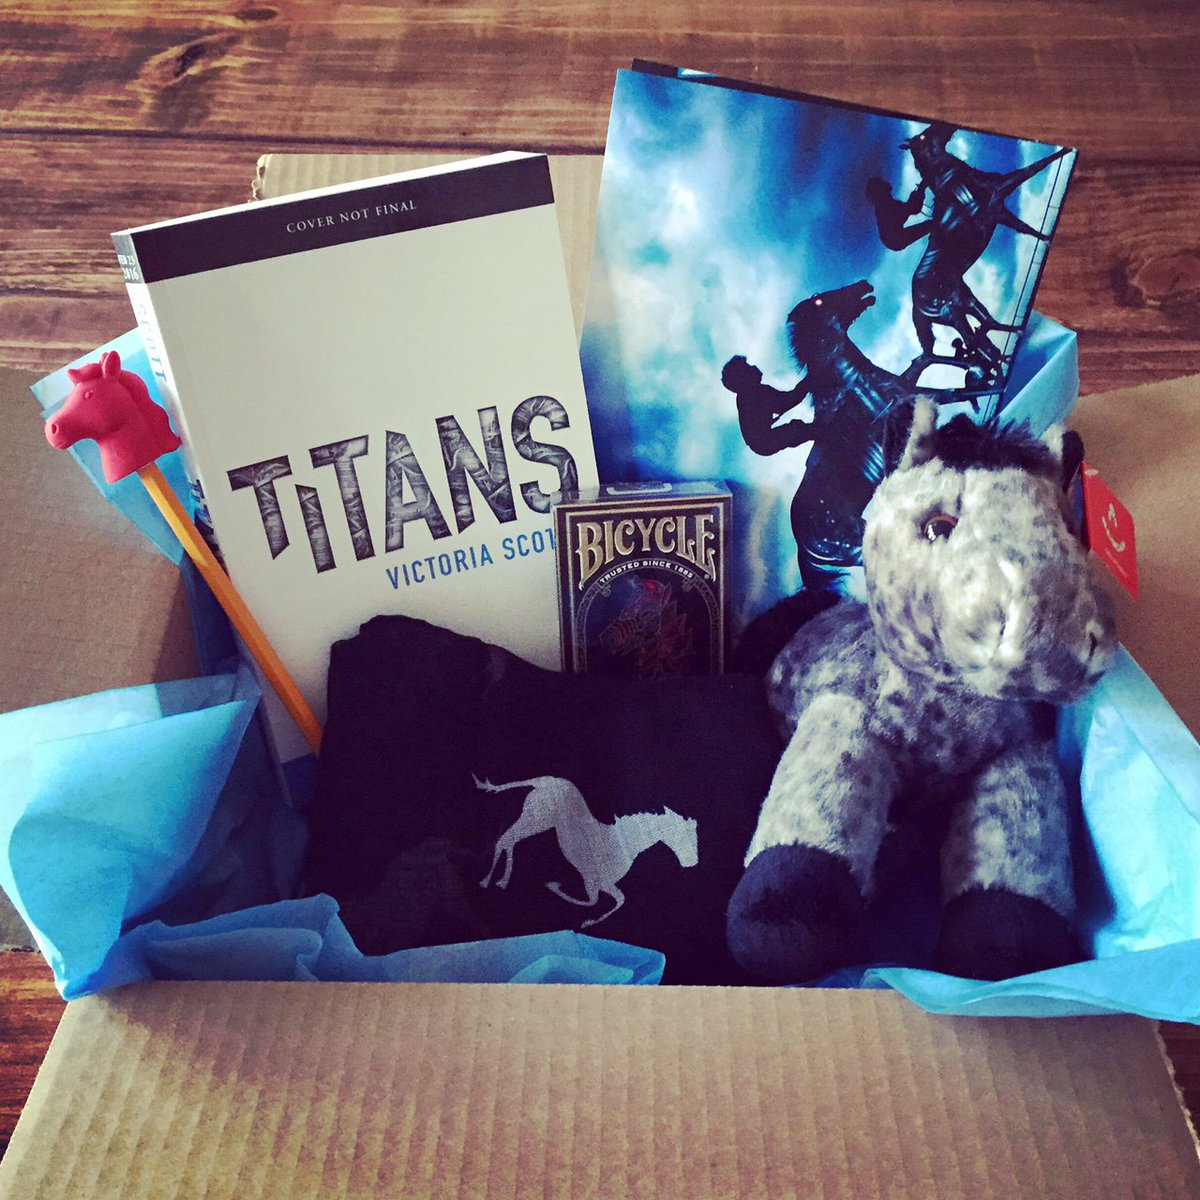 TITANS hits bookstores in 8 days! RT to win the second-to-last TITANS prize box. Giveaway ends tonight! https://t.co/tqWaNso8VK